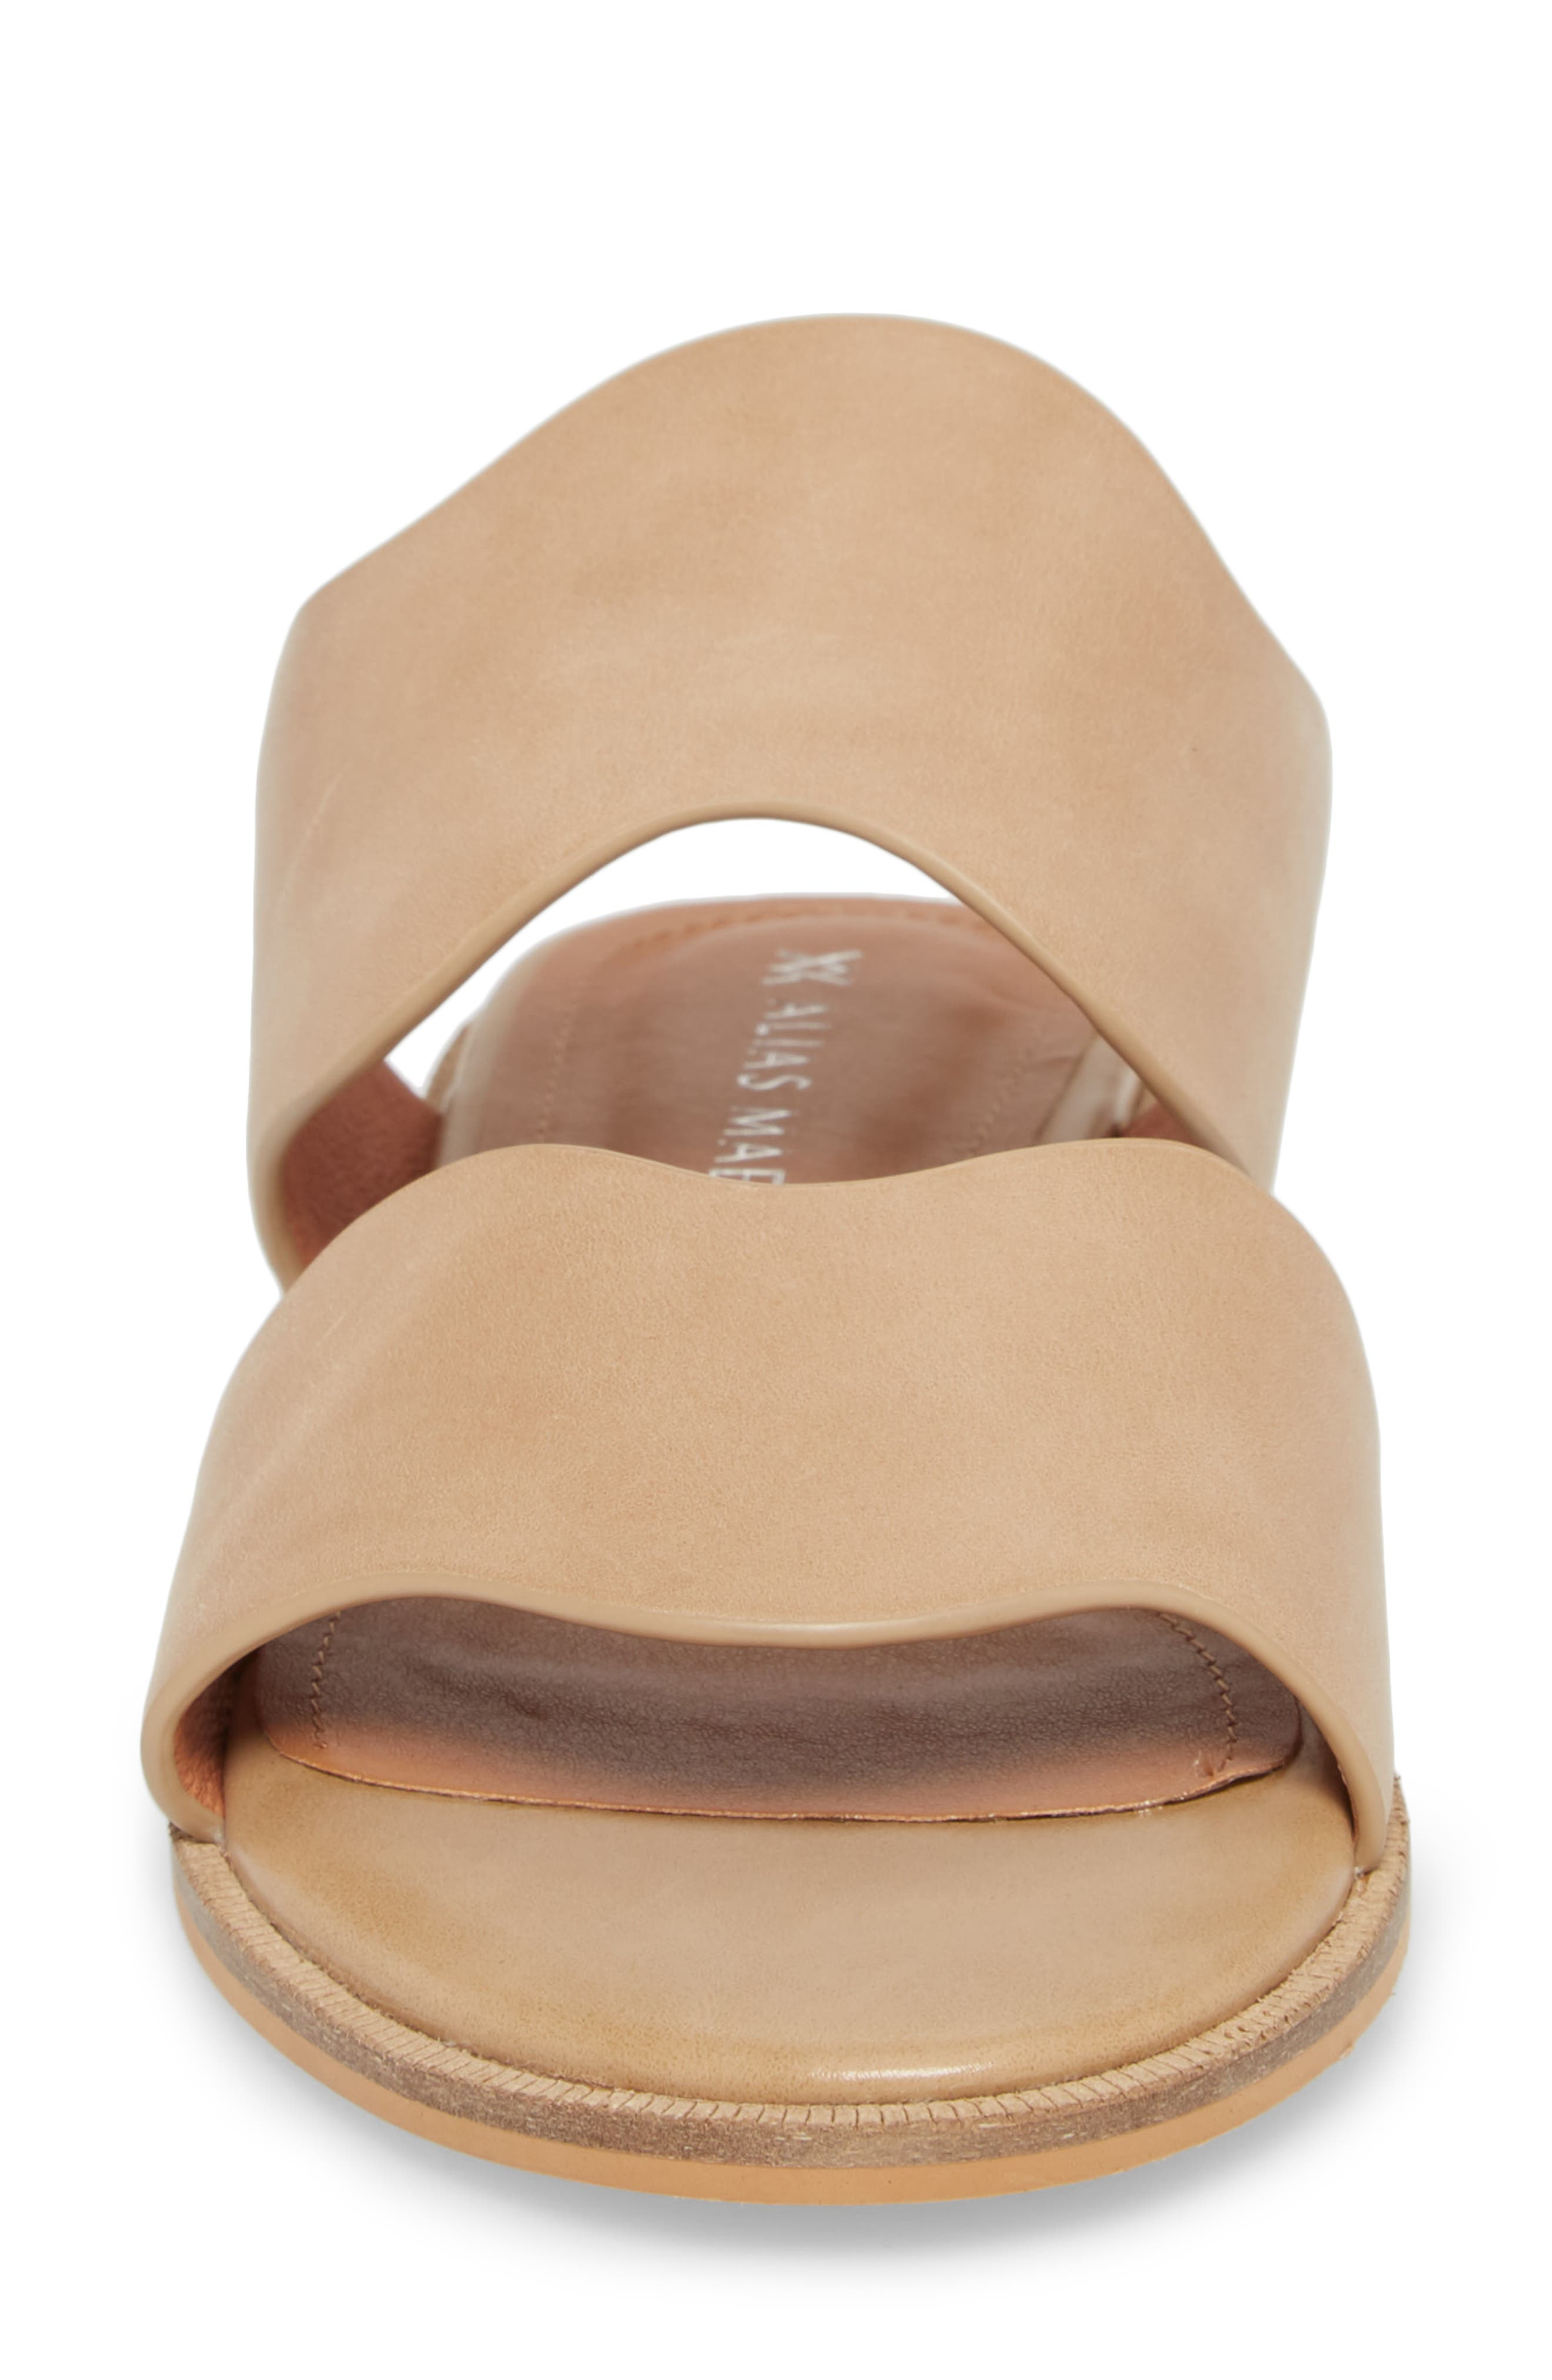 Thermos Scalloped Slide Sandal,                             Alternate thumbnail 4, color,                             Natural Leather